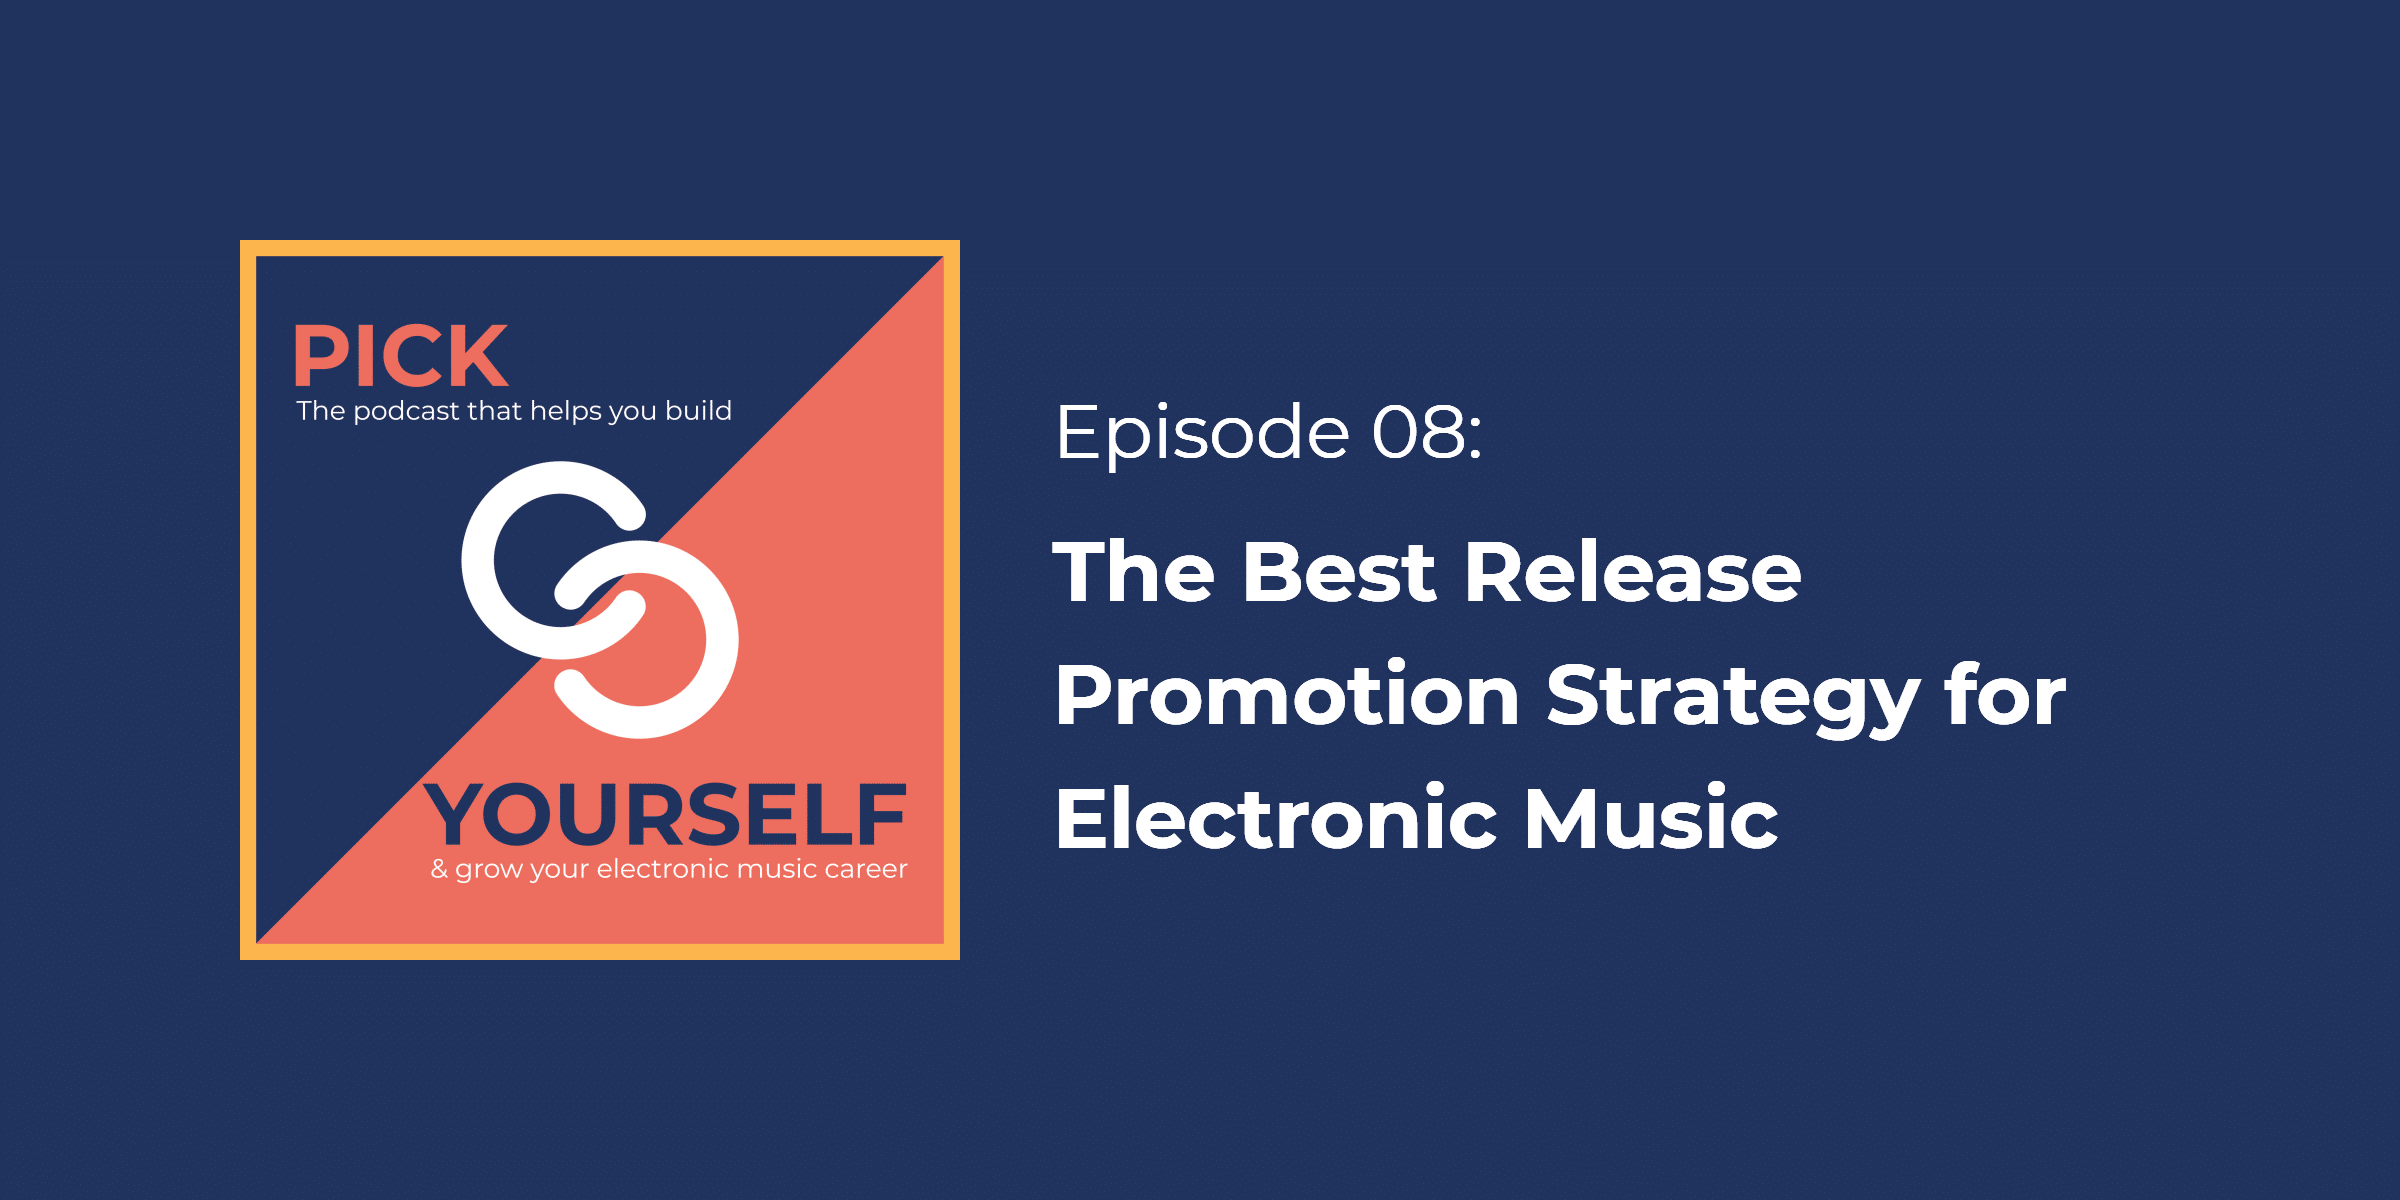 The Best Release Promotion Strategy For Electronic Music